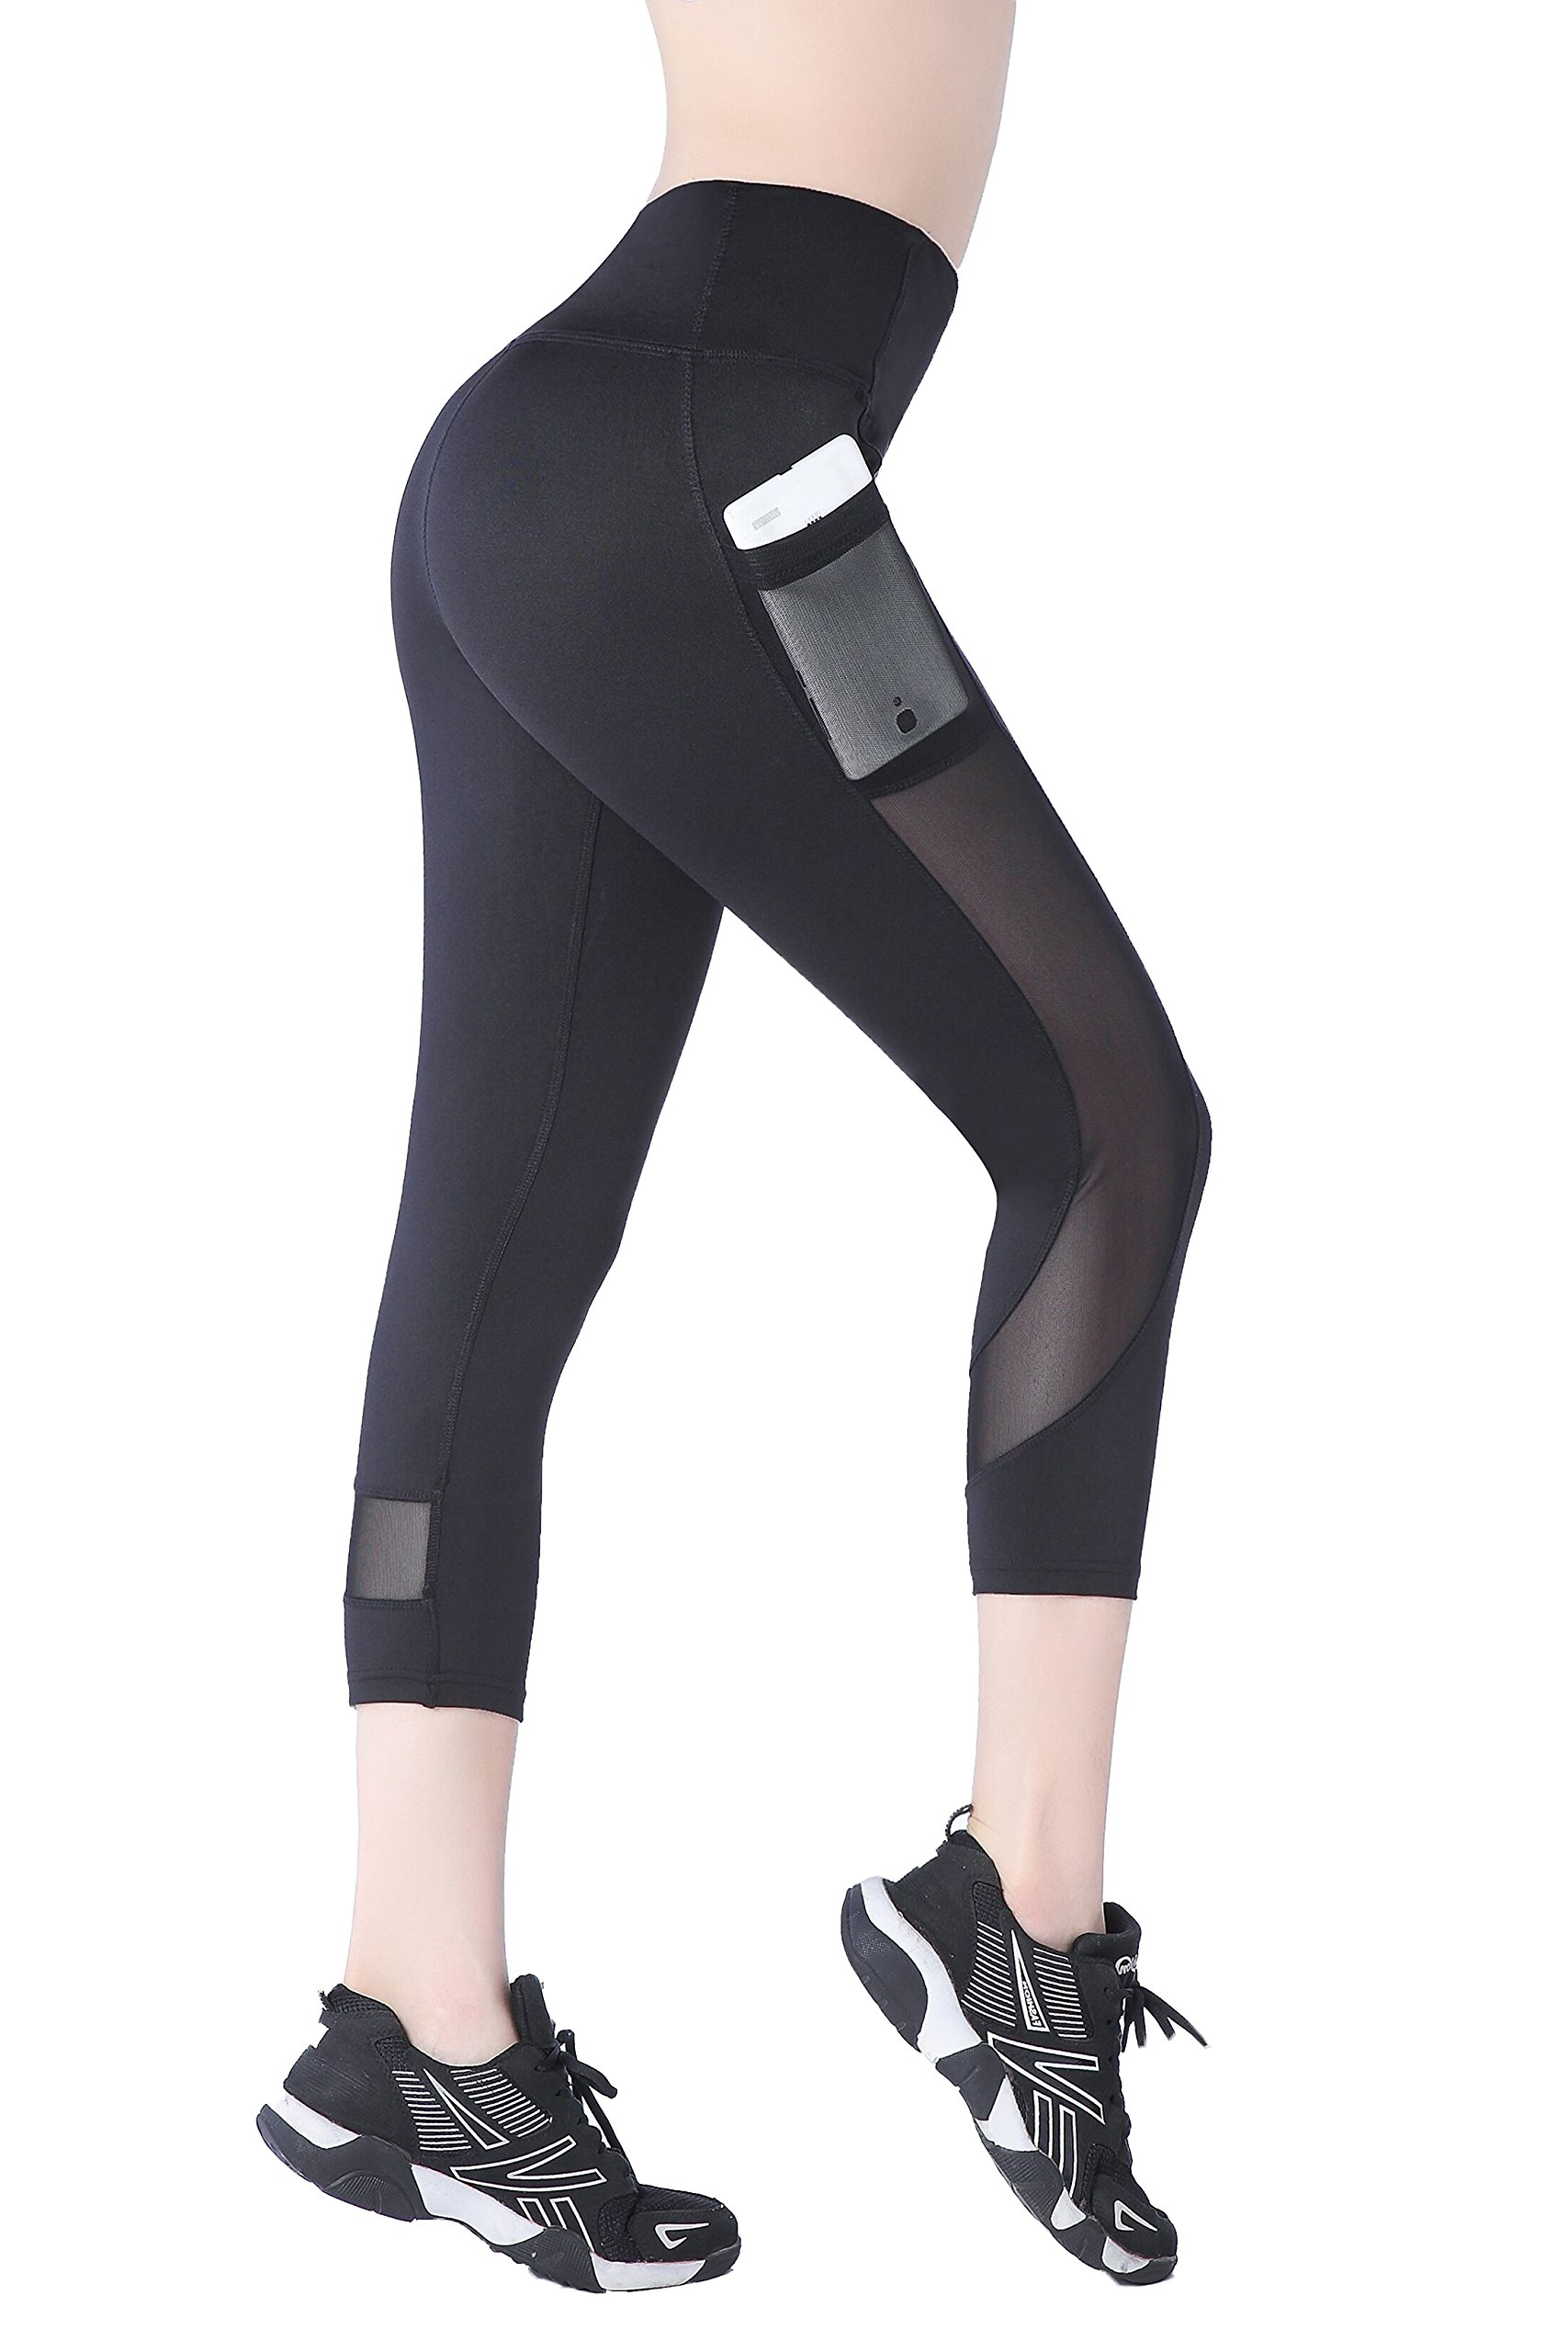 d867cb7c33f7e EAST HONG Womens Mesh Capri Workout Yoga Pants Running Tights Active  Leggings product image